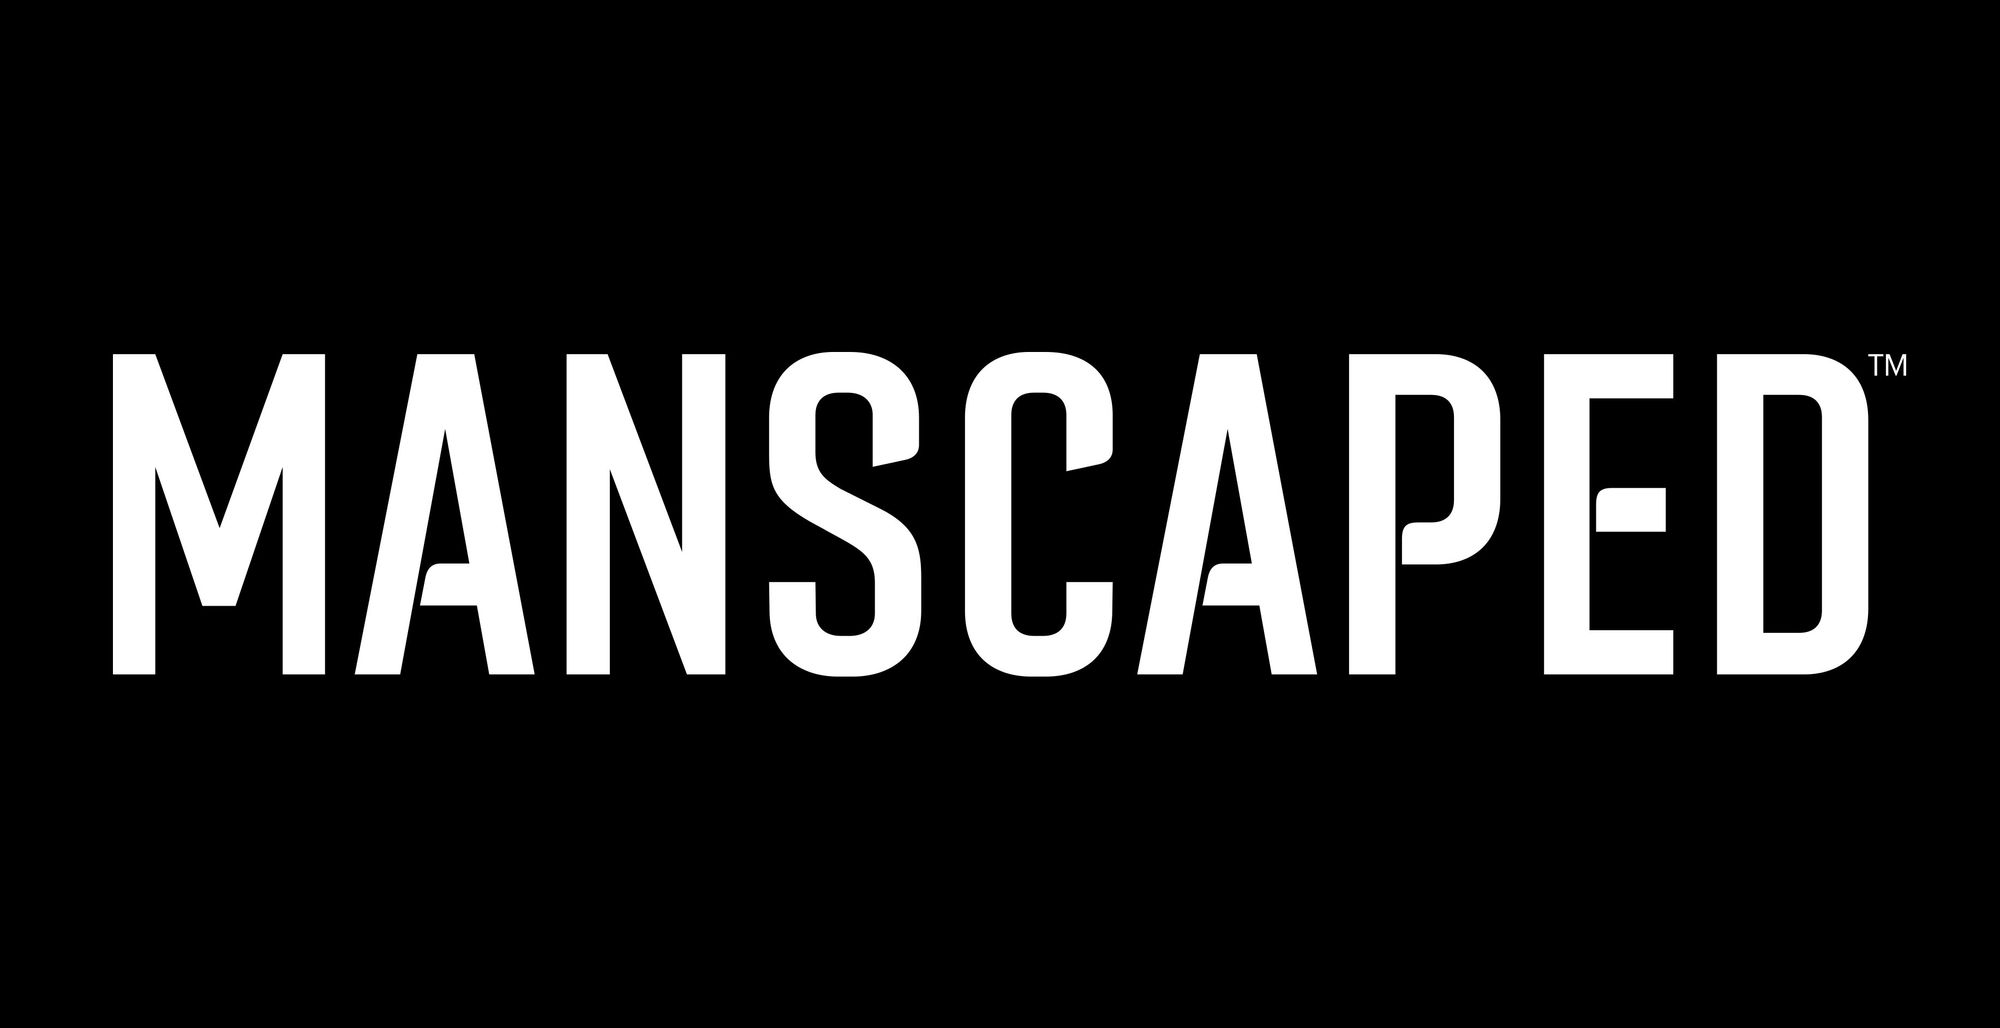 How to change the password on my Manscaped™ account